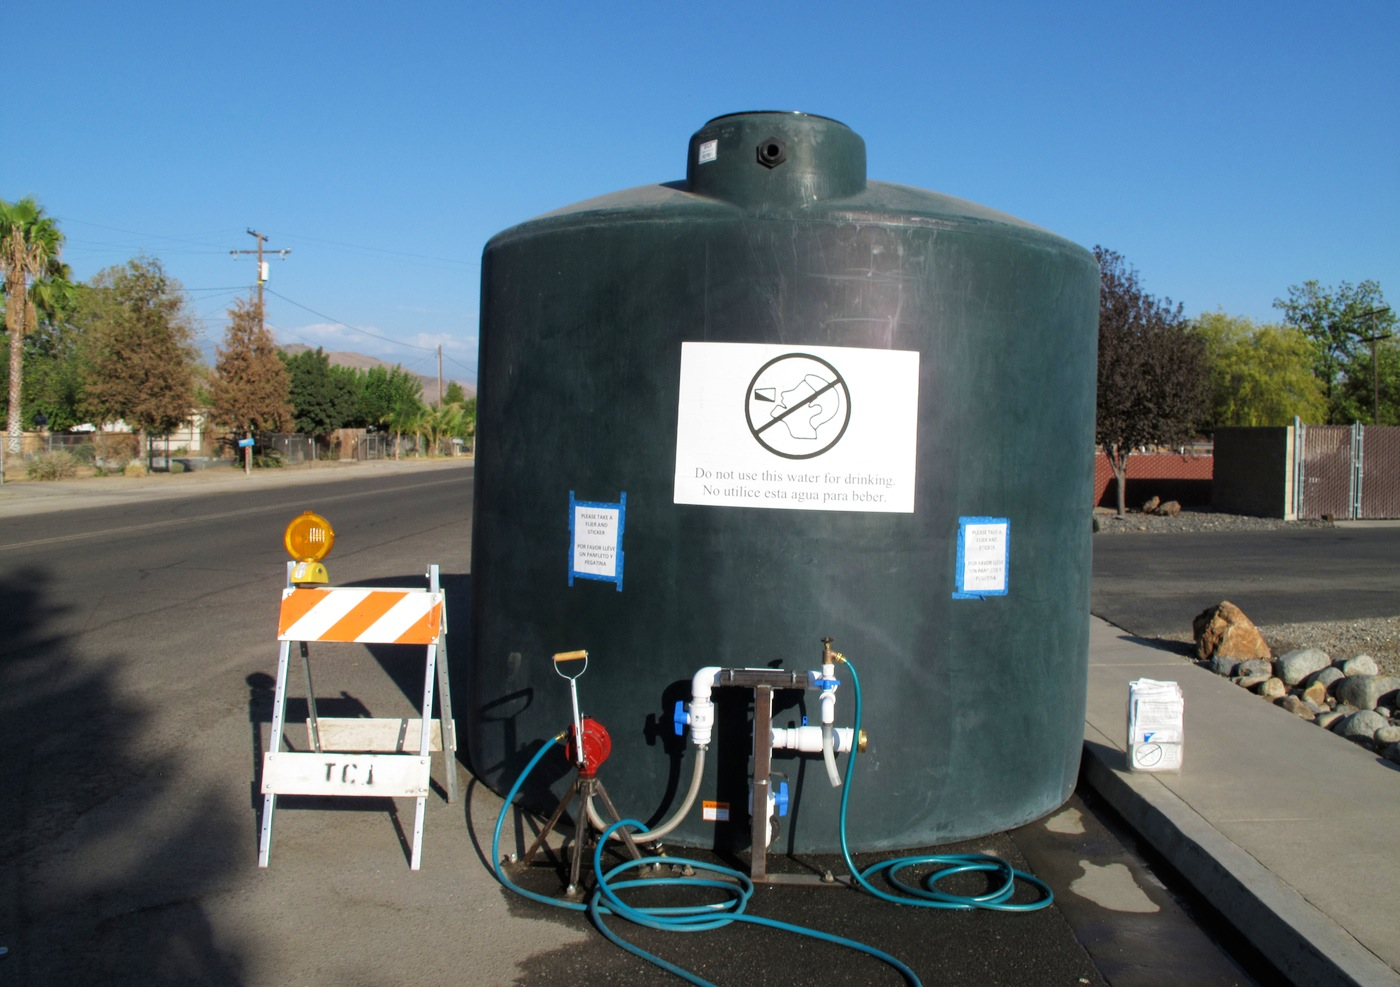 Residents whose wells have run dry can draw water from this 5,000-gallon (18,900-liter) water tank in East Porterville, Calif. The health department recently completed a survey about the impacts of the drought on East Porterville and a neighboring community.